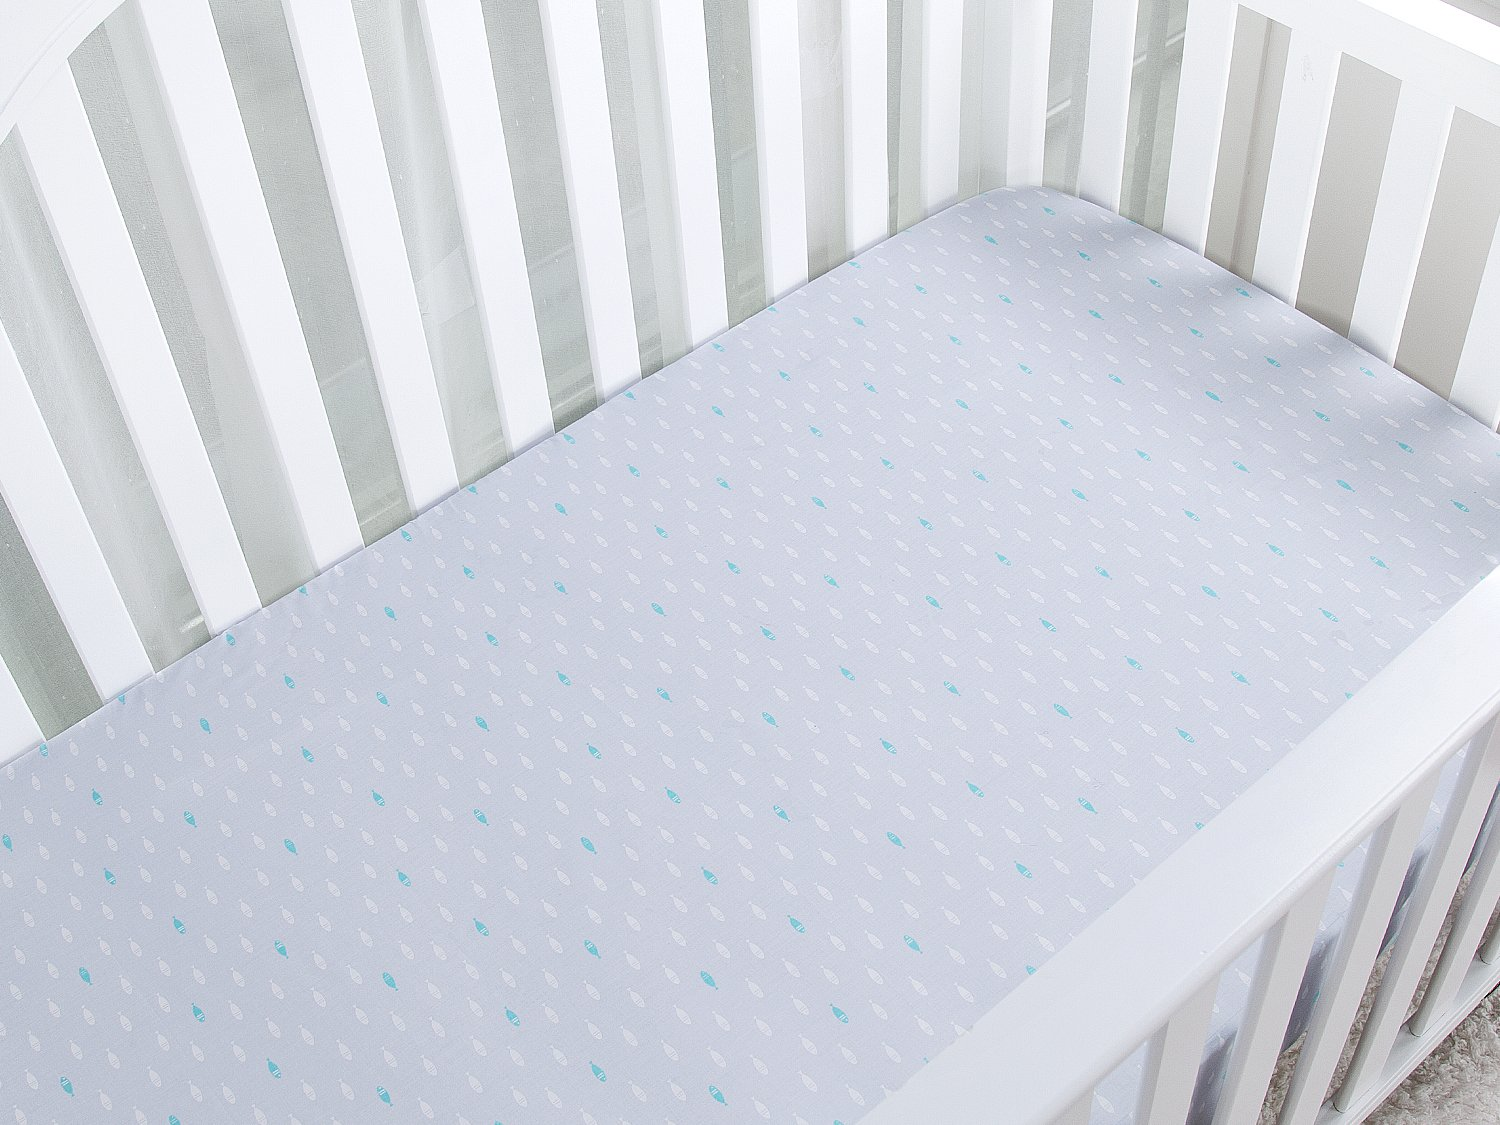 Breathable Cozy Comfortable 28 x 52in White TILLYOU 100/% Cotton Crib Sheet Fitted Hypoallergenic Toddler Mattress Sheets For Baby Boys and Girls